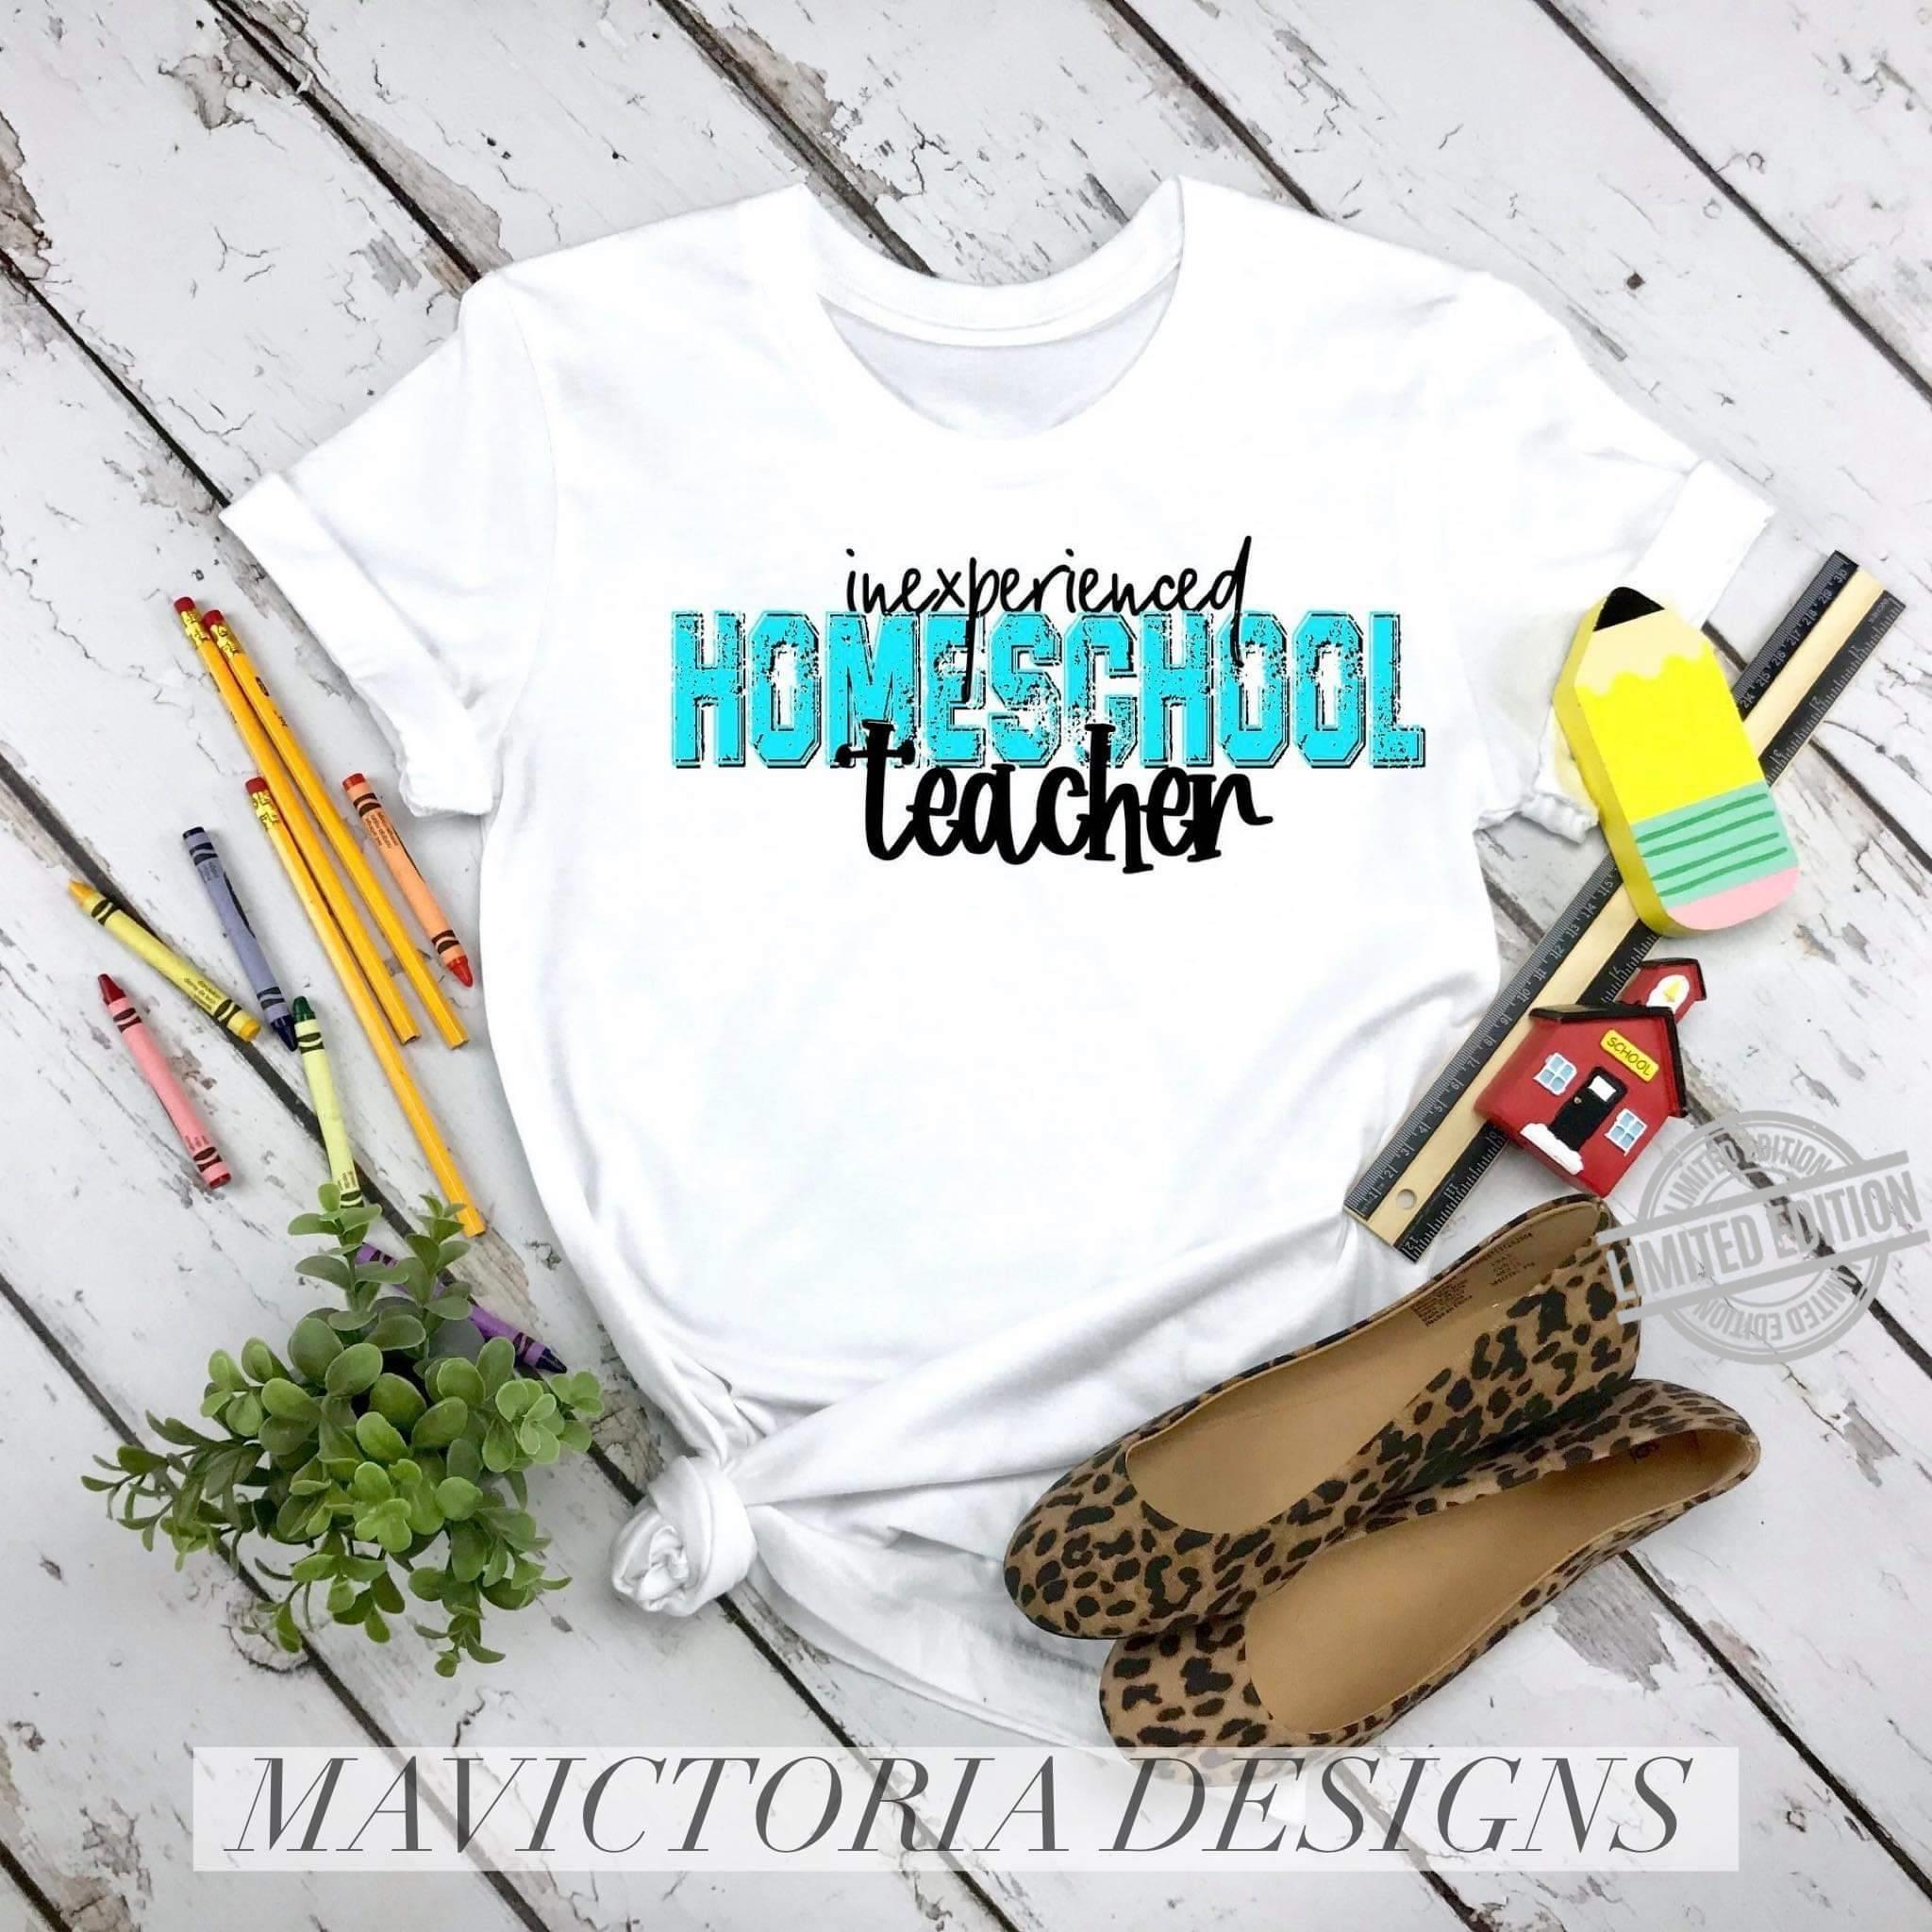 Inexperienced Homeschool Teacher Shirt